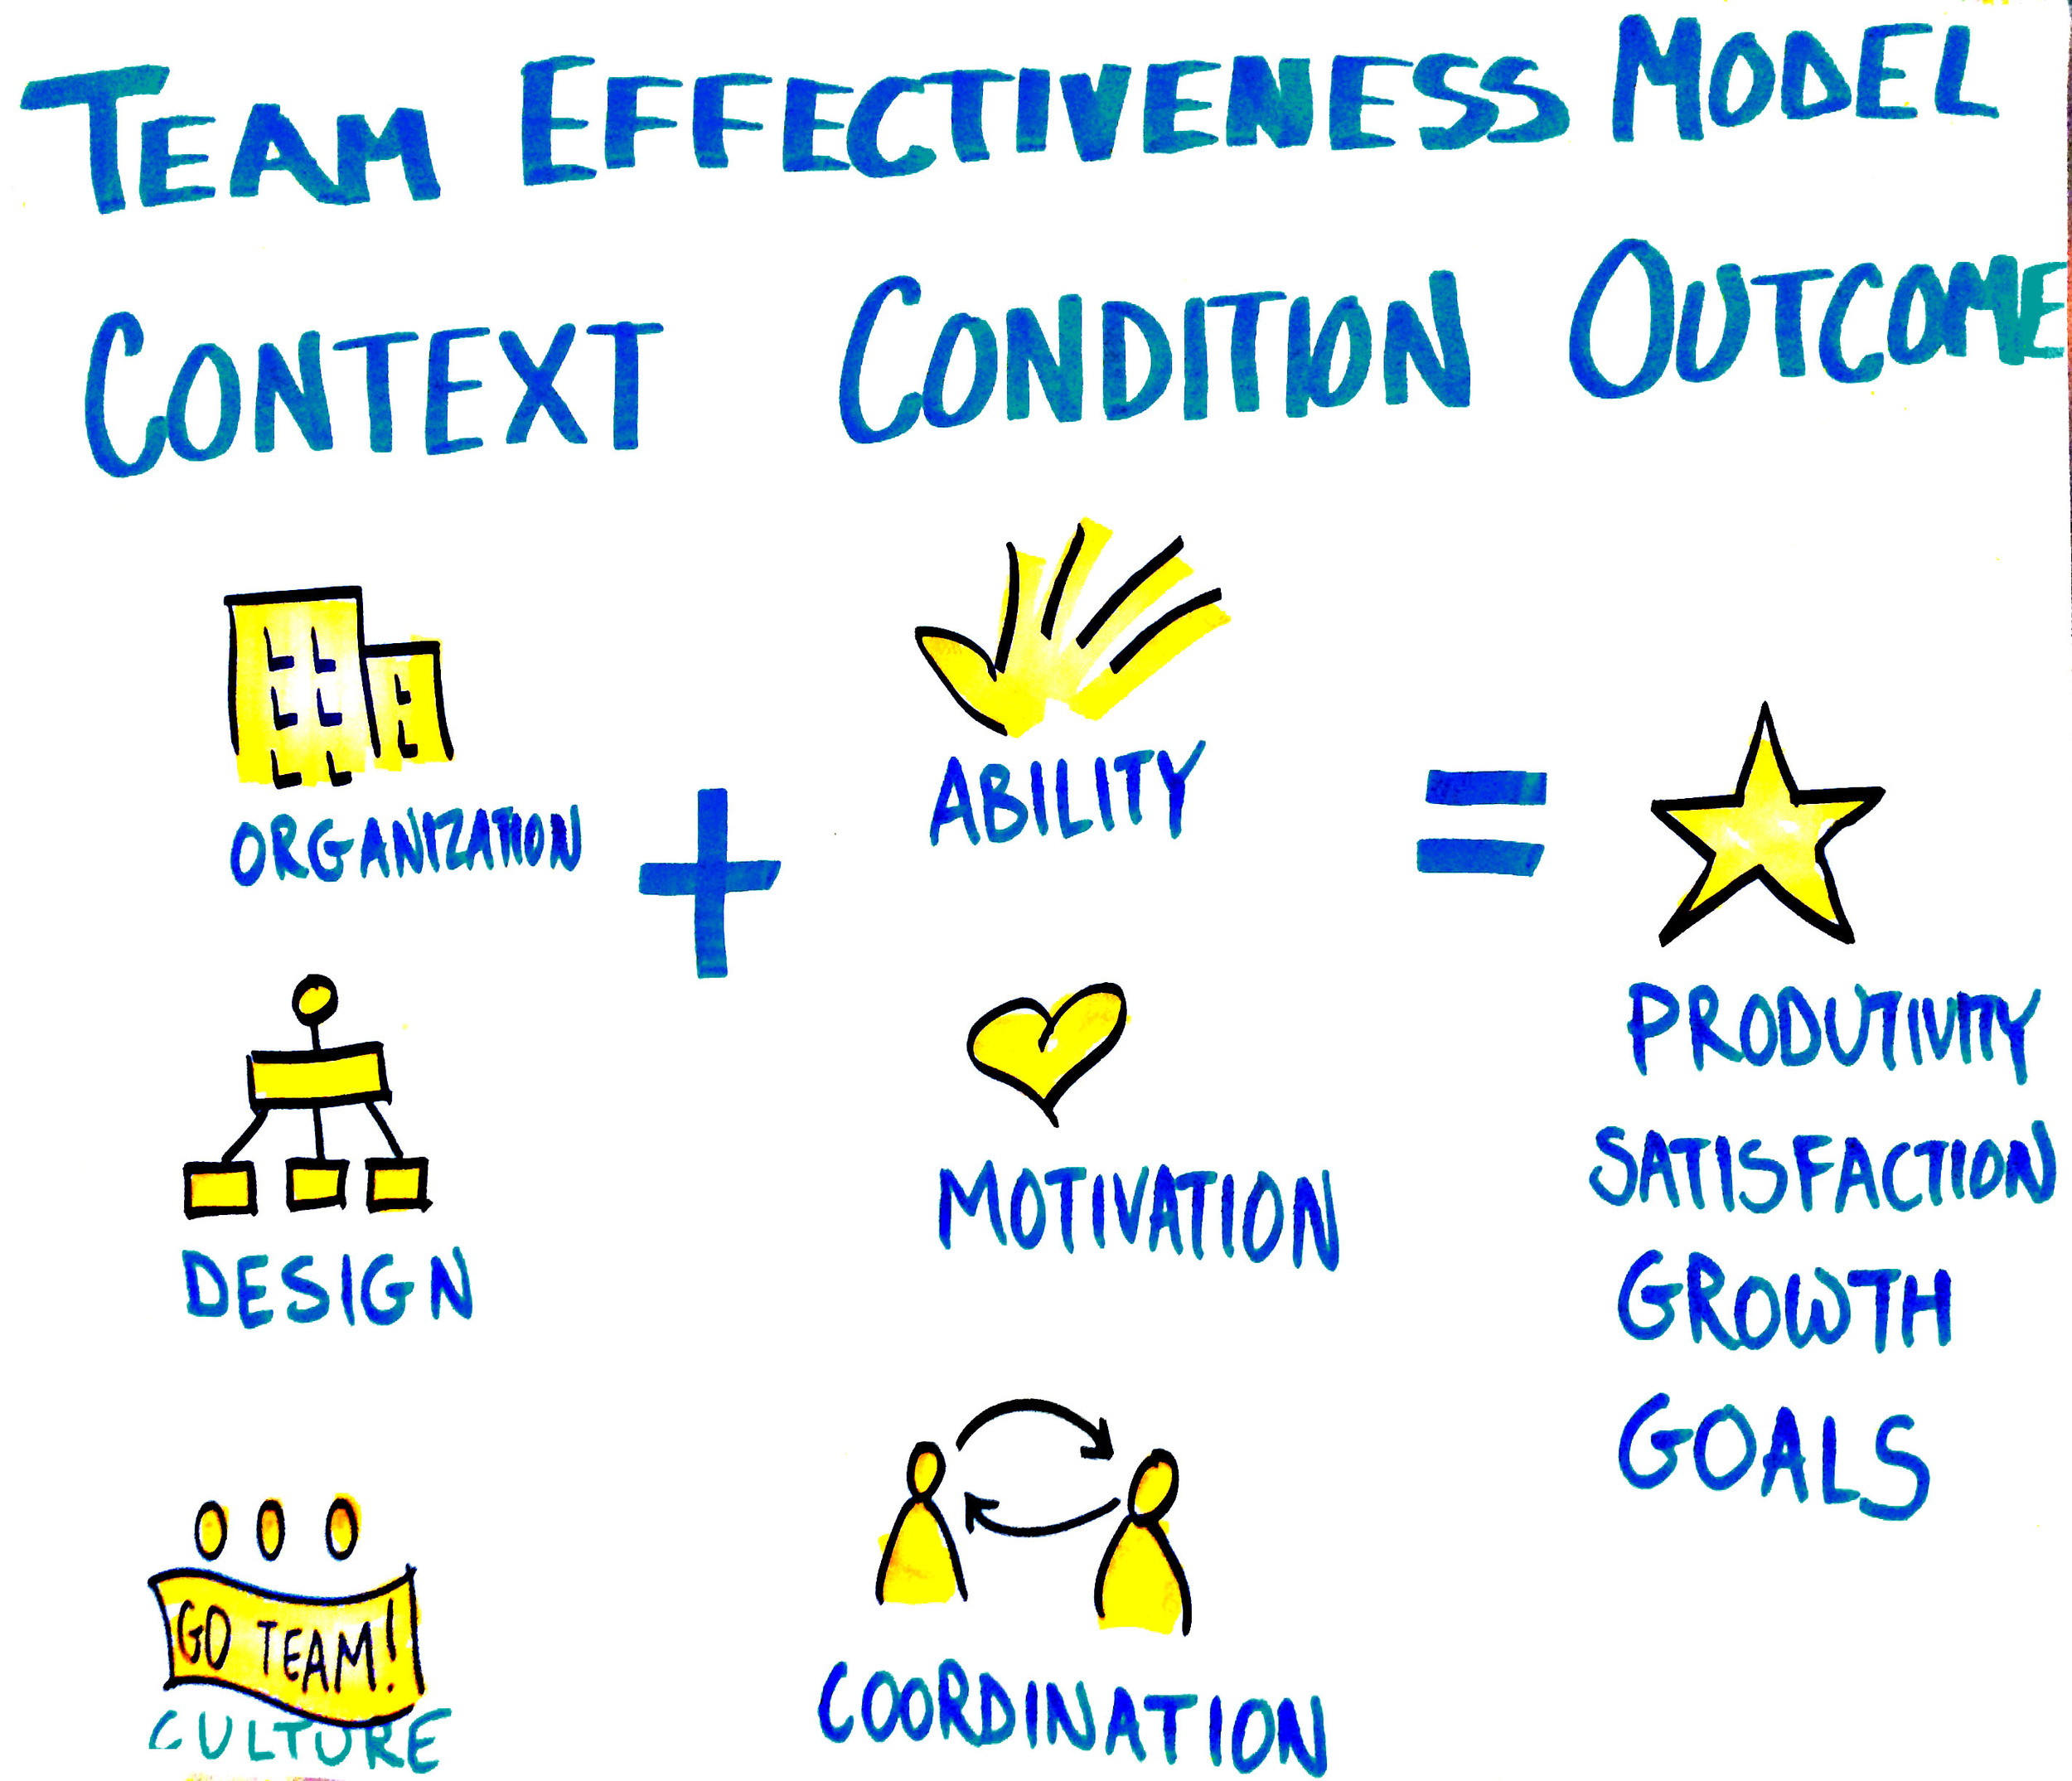 The Team Effectiveness Model looks at factors of Context and Condition to impact Outcome.